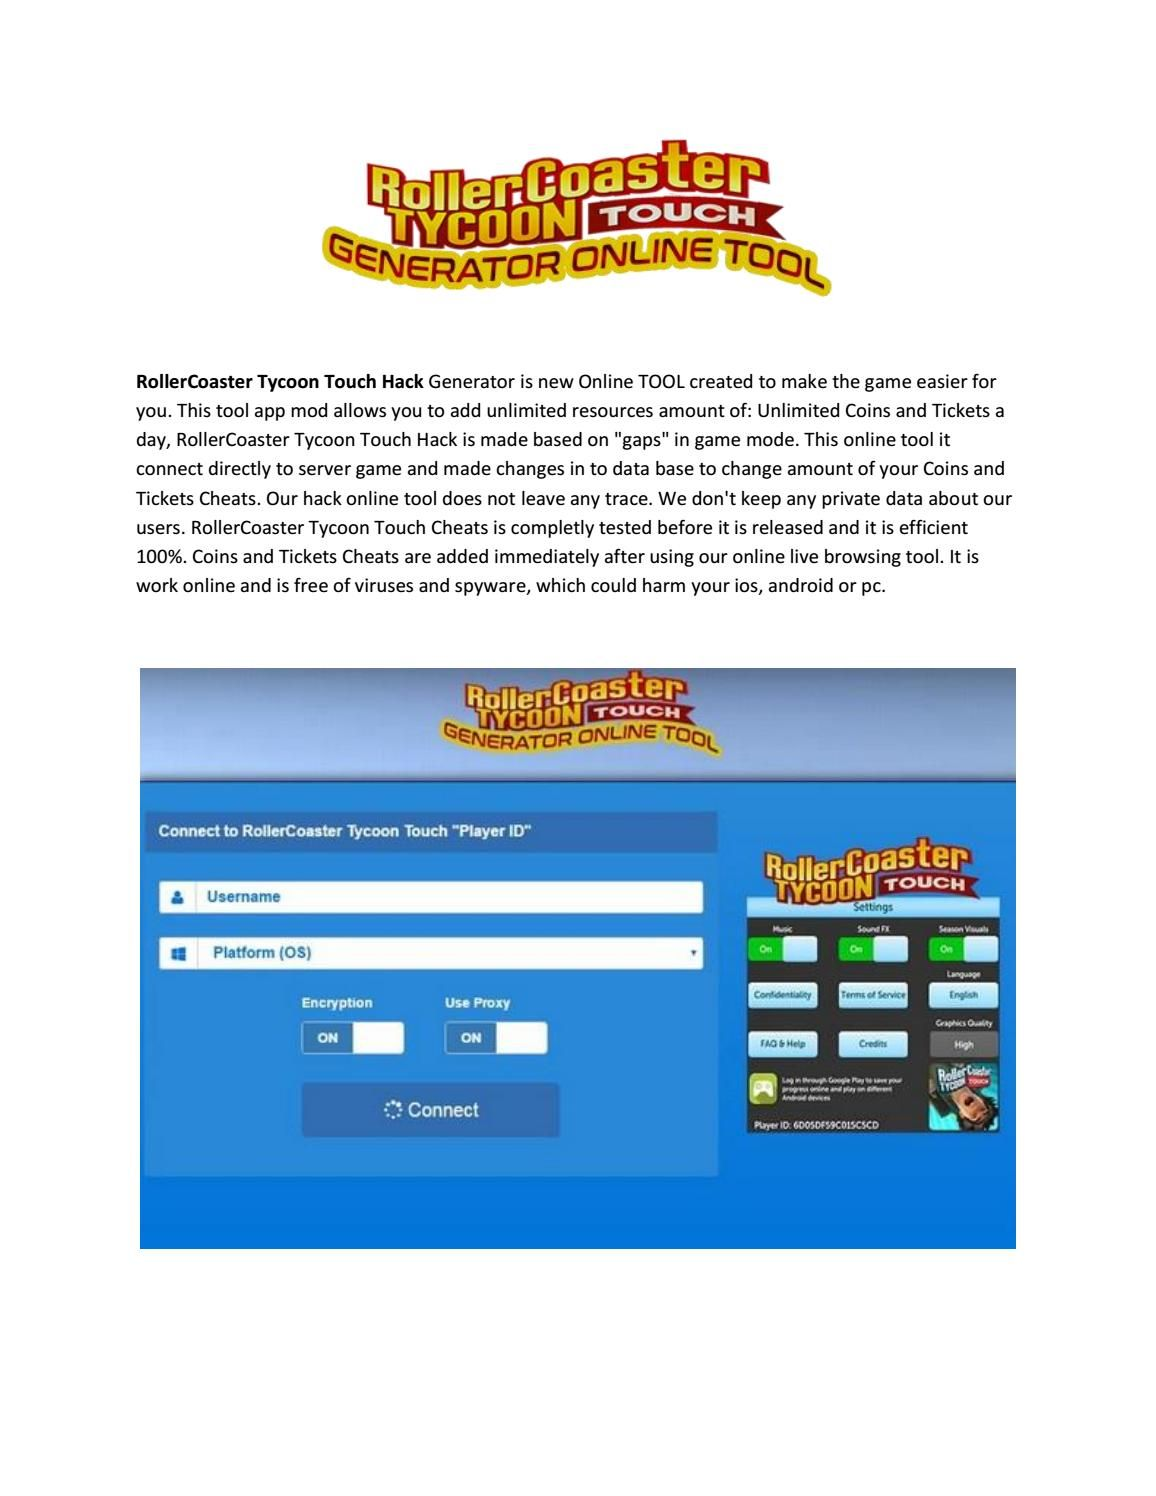 Rollercoaster tycoon touch hack - Get 75,000 Free Tickets